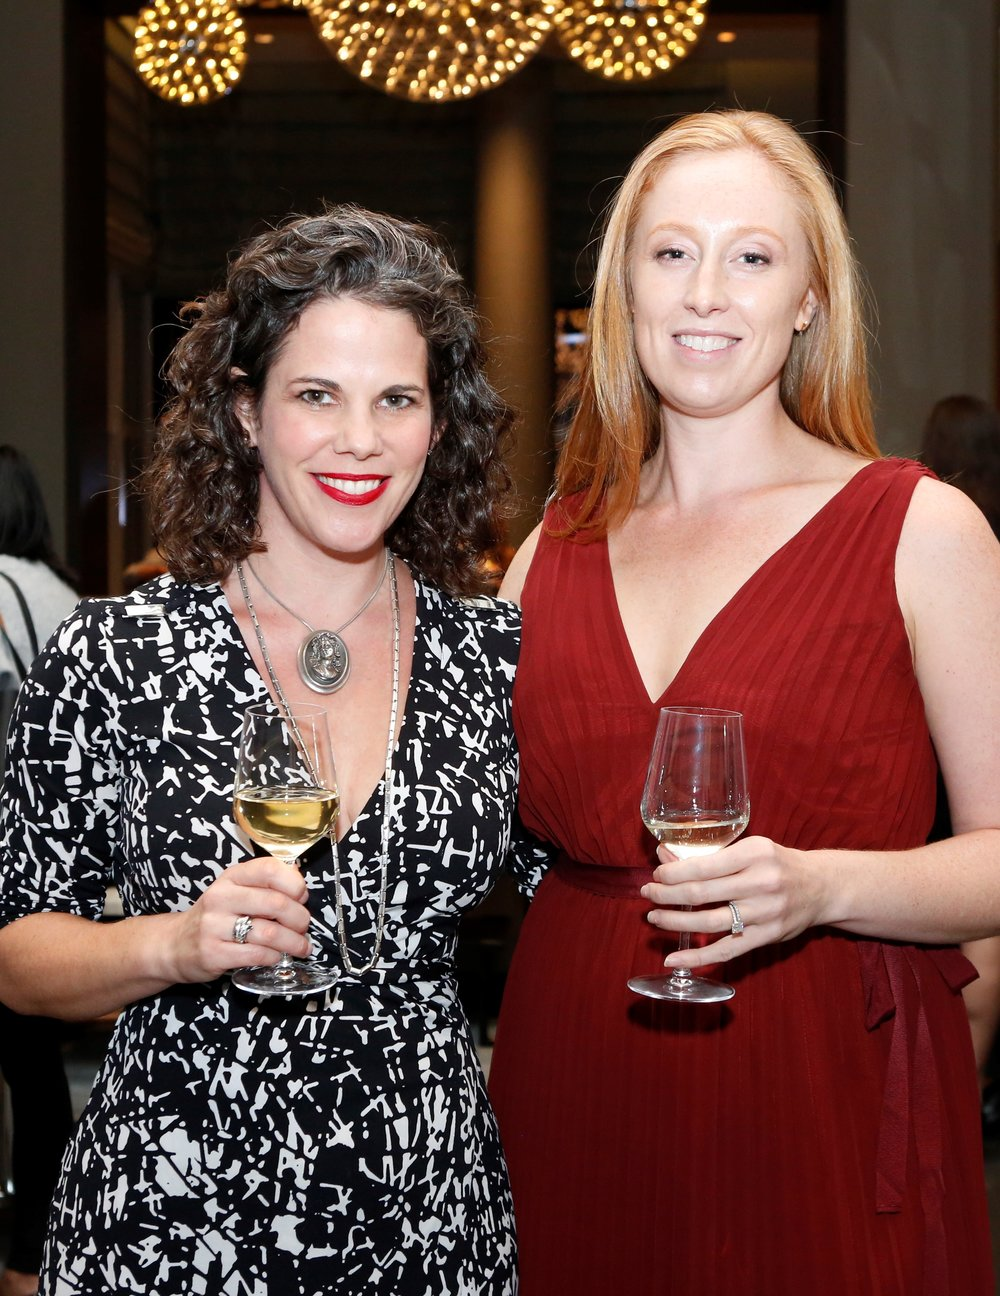 Five Senses Tastings Founder Kala Maxym and Vinfluence Founder, Shannon Westfall.